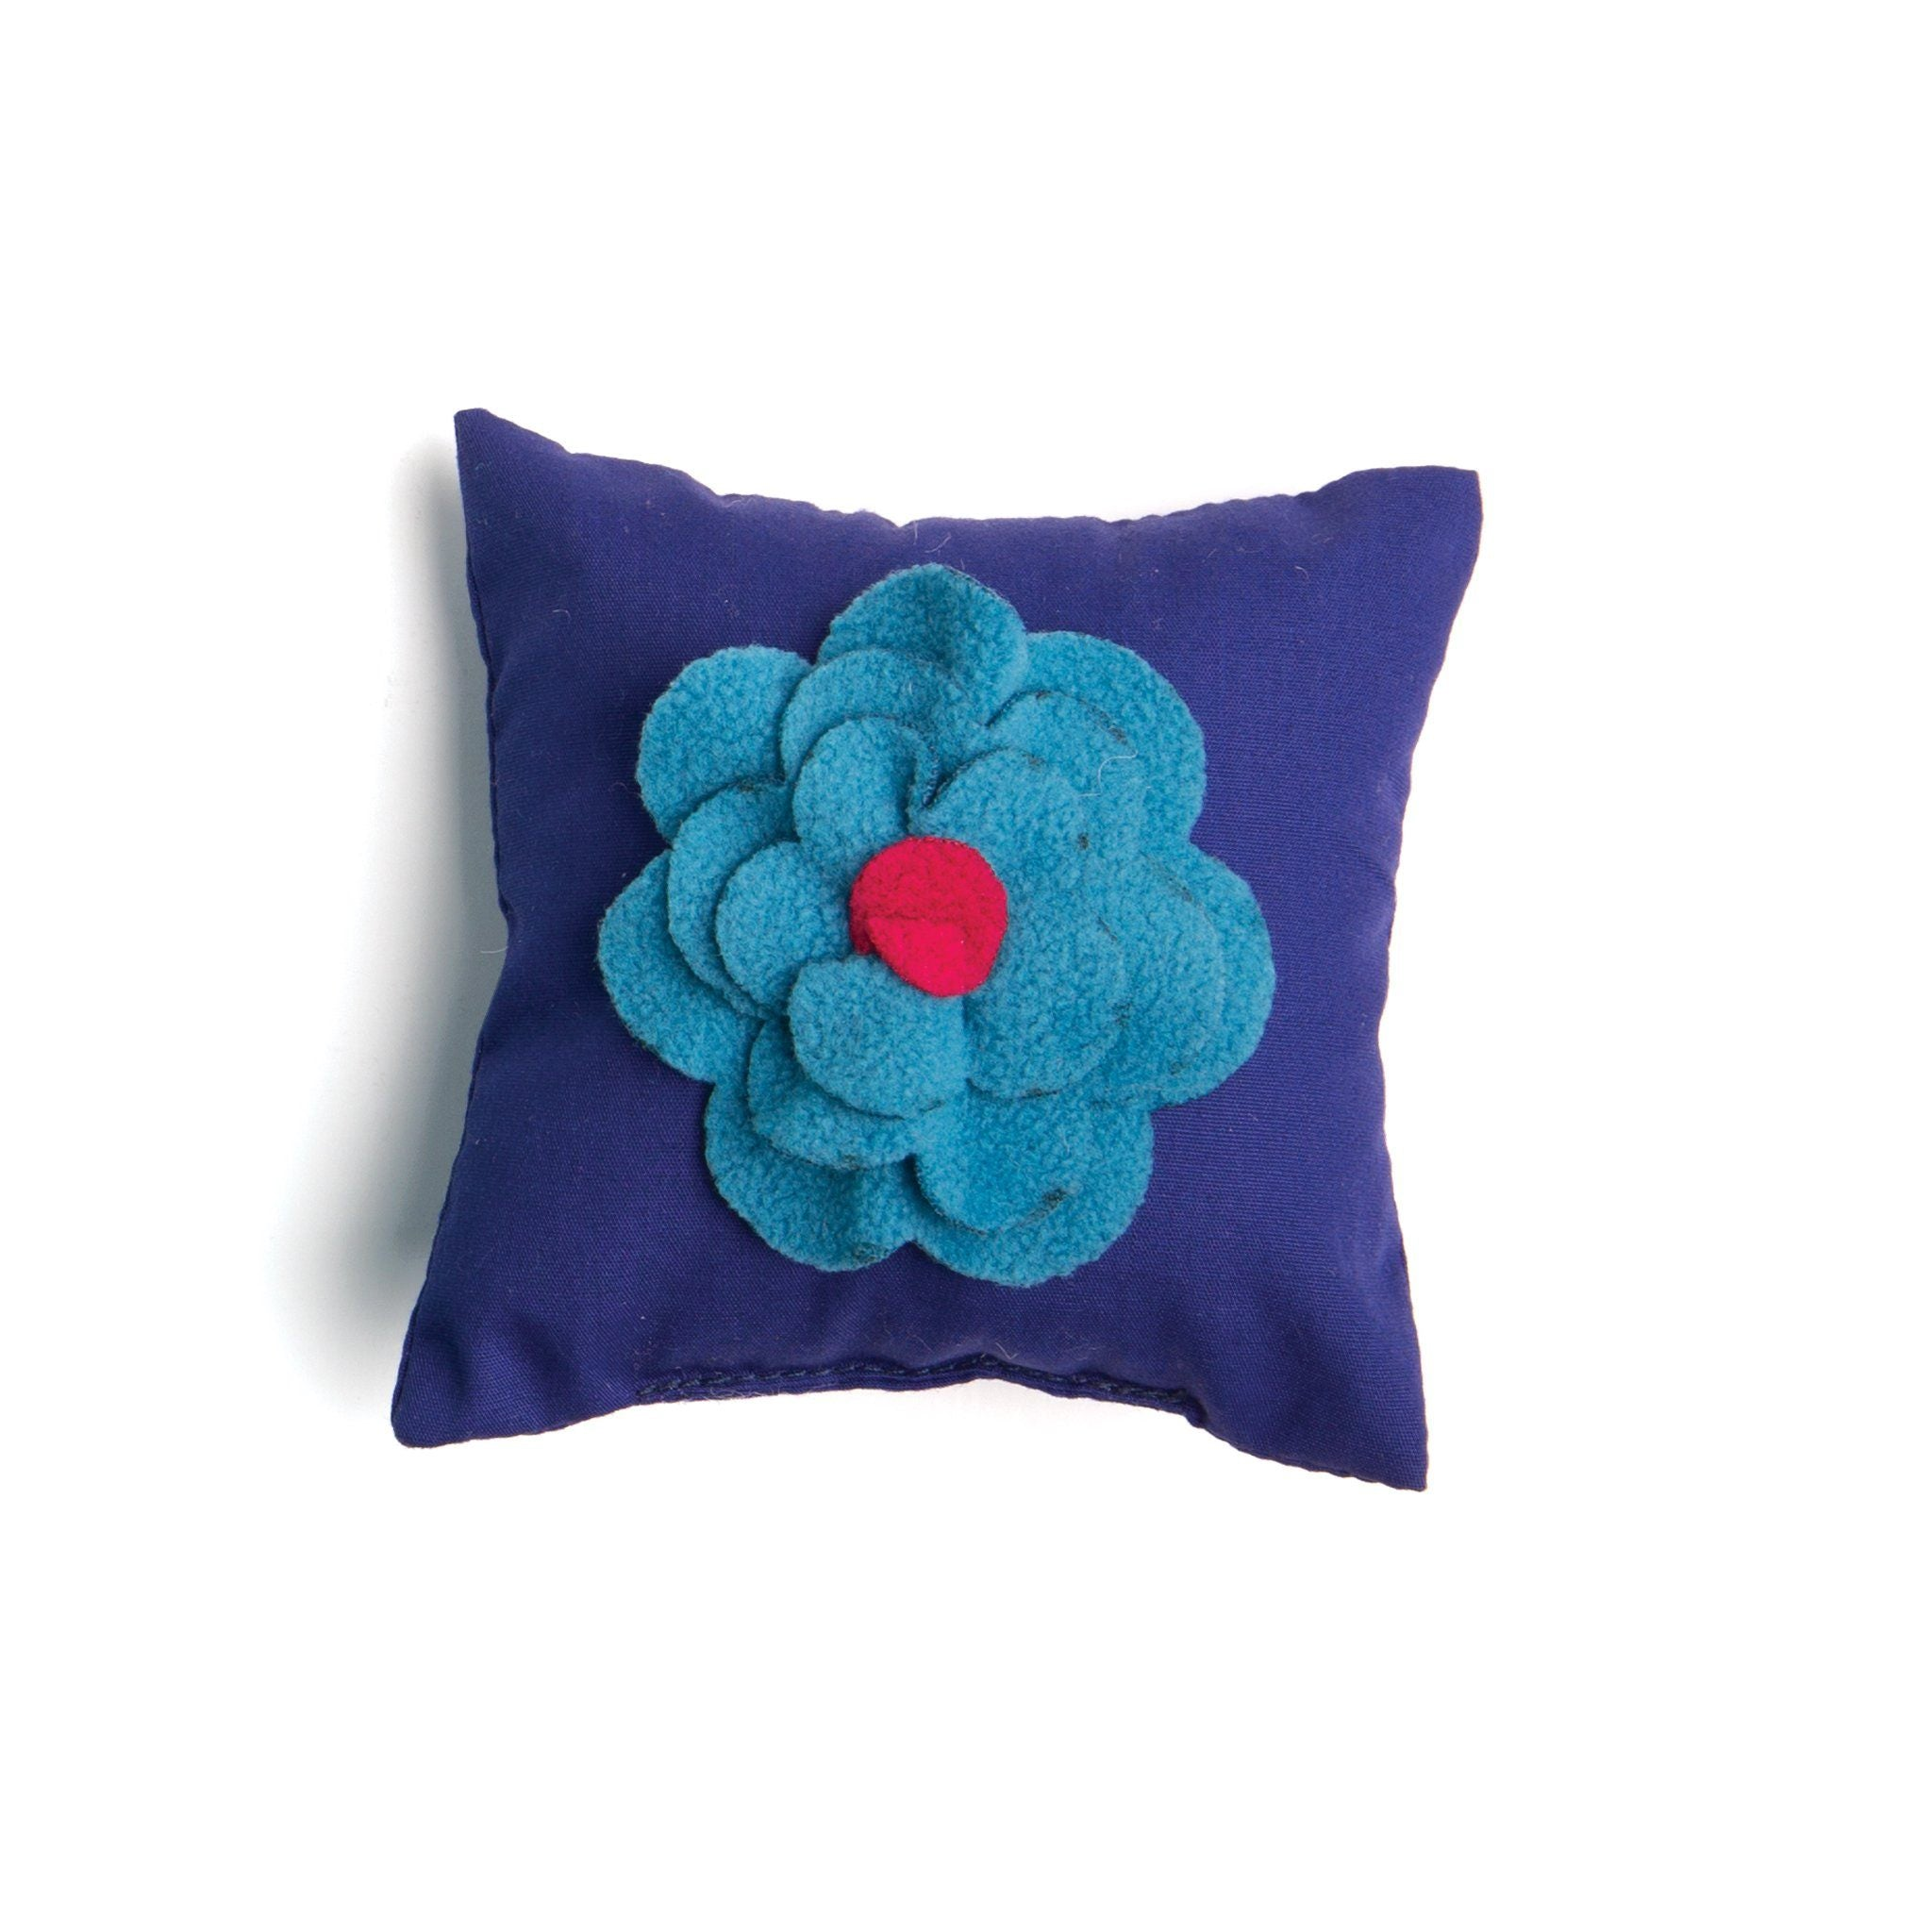 Field of flowers purple throw pillow with 3D felt flower for all 18 inch dolls.